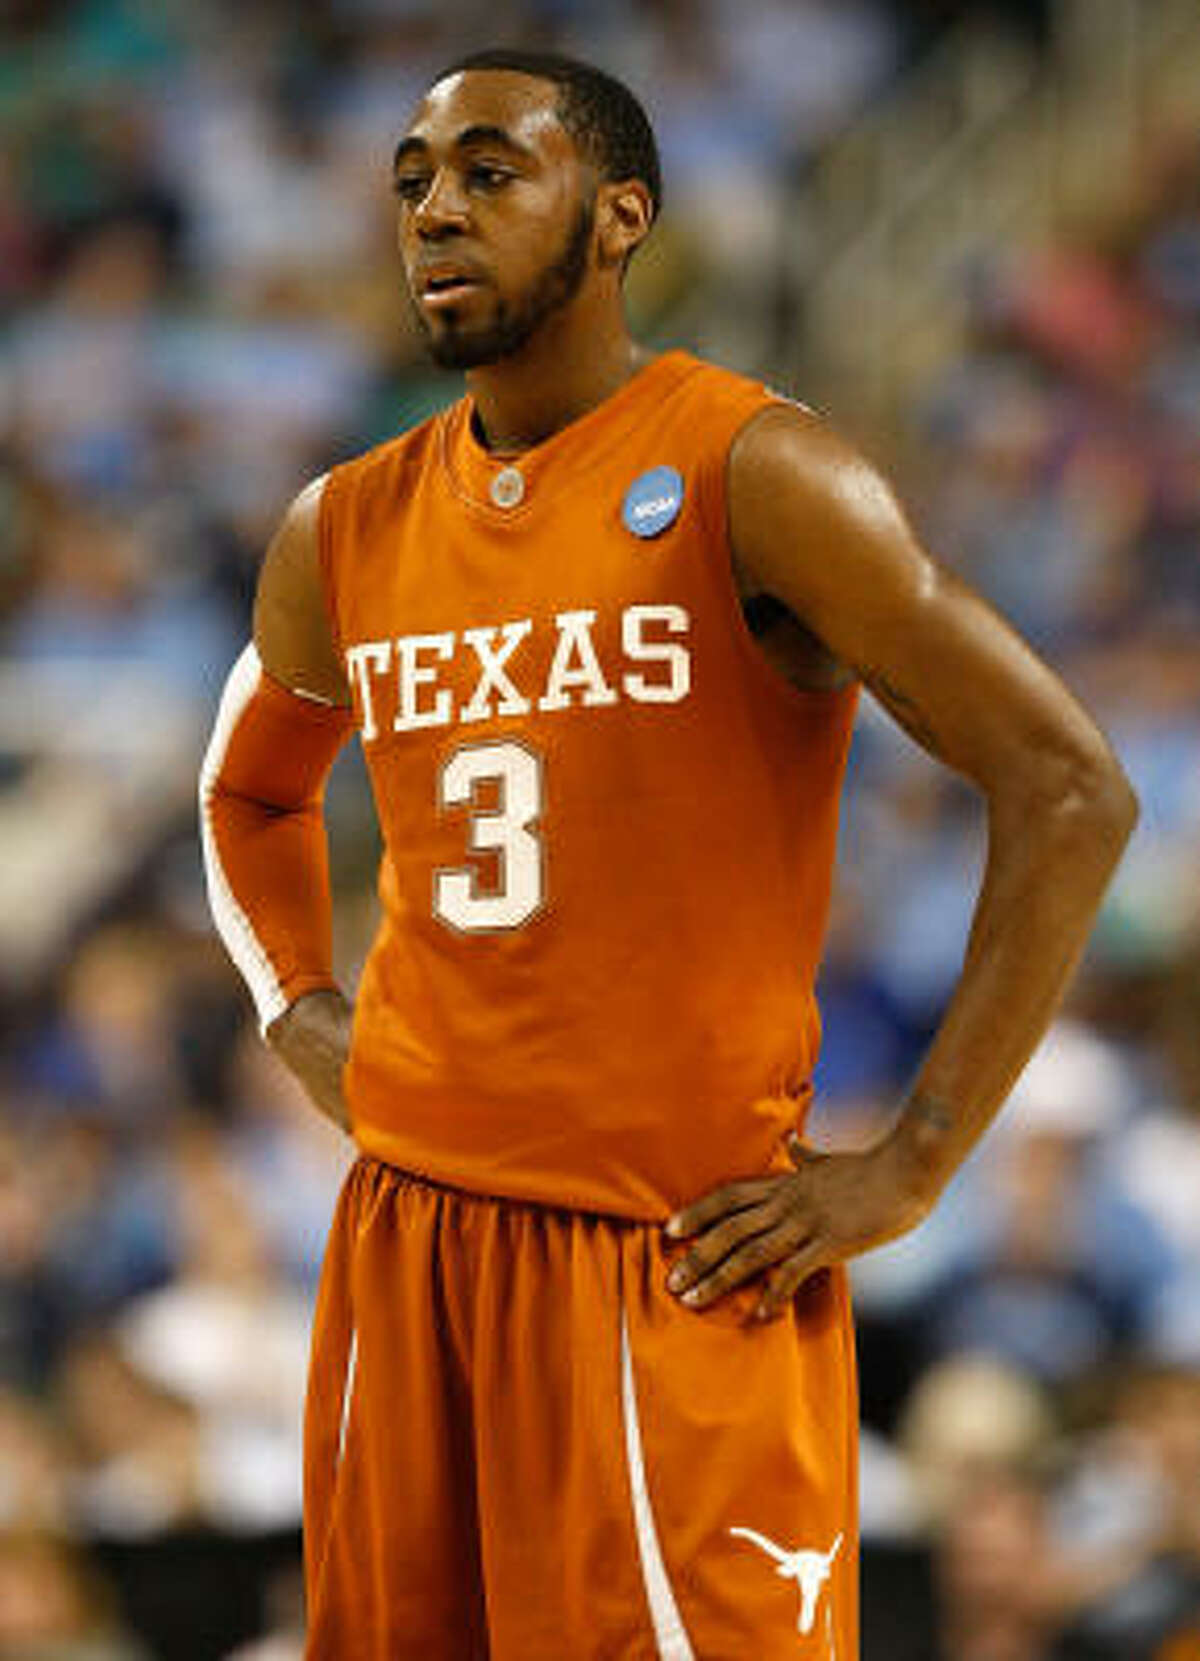 East Regional: Duke 74, Texas 69 A.J. Abrams of Texas looks on in the final seconds.